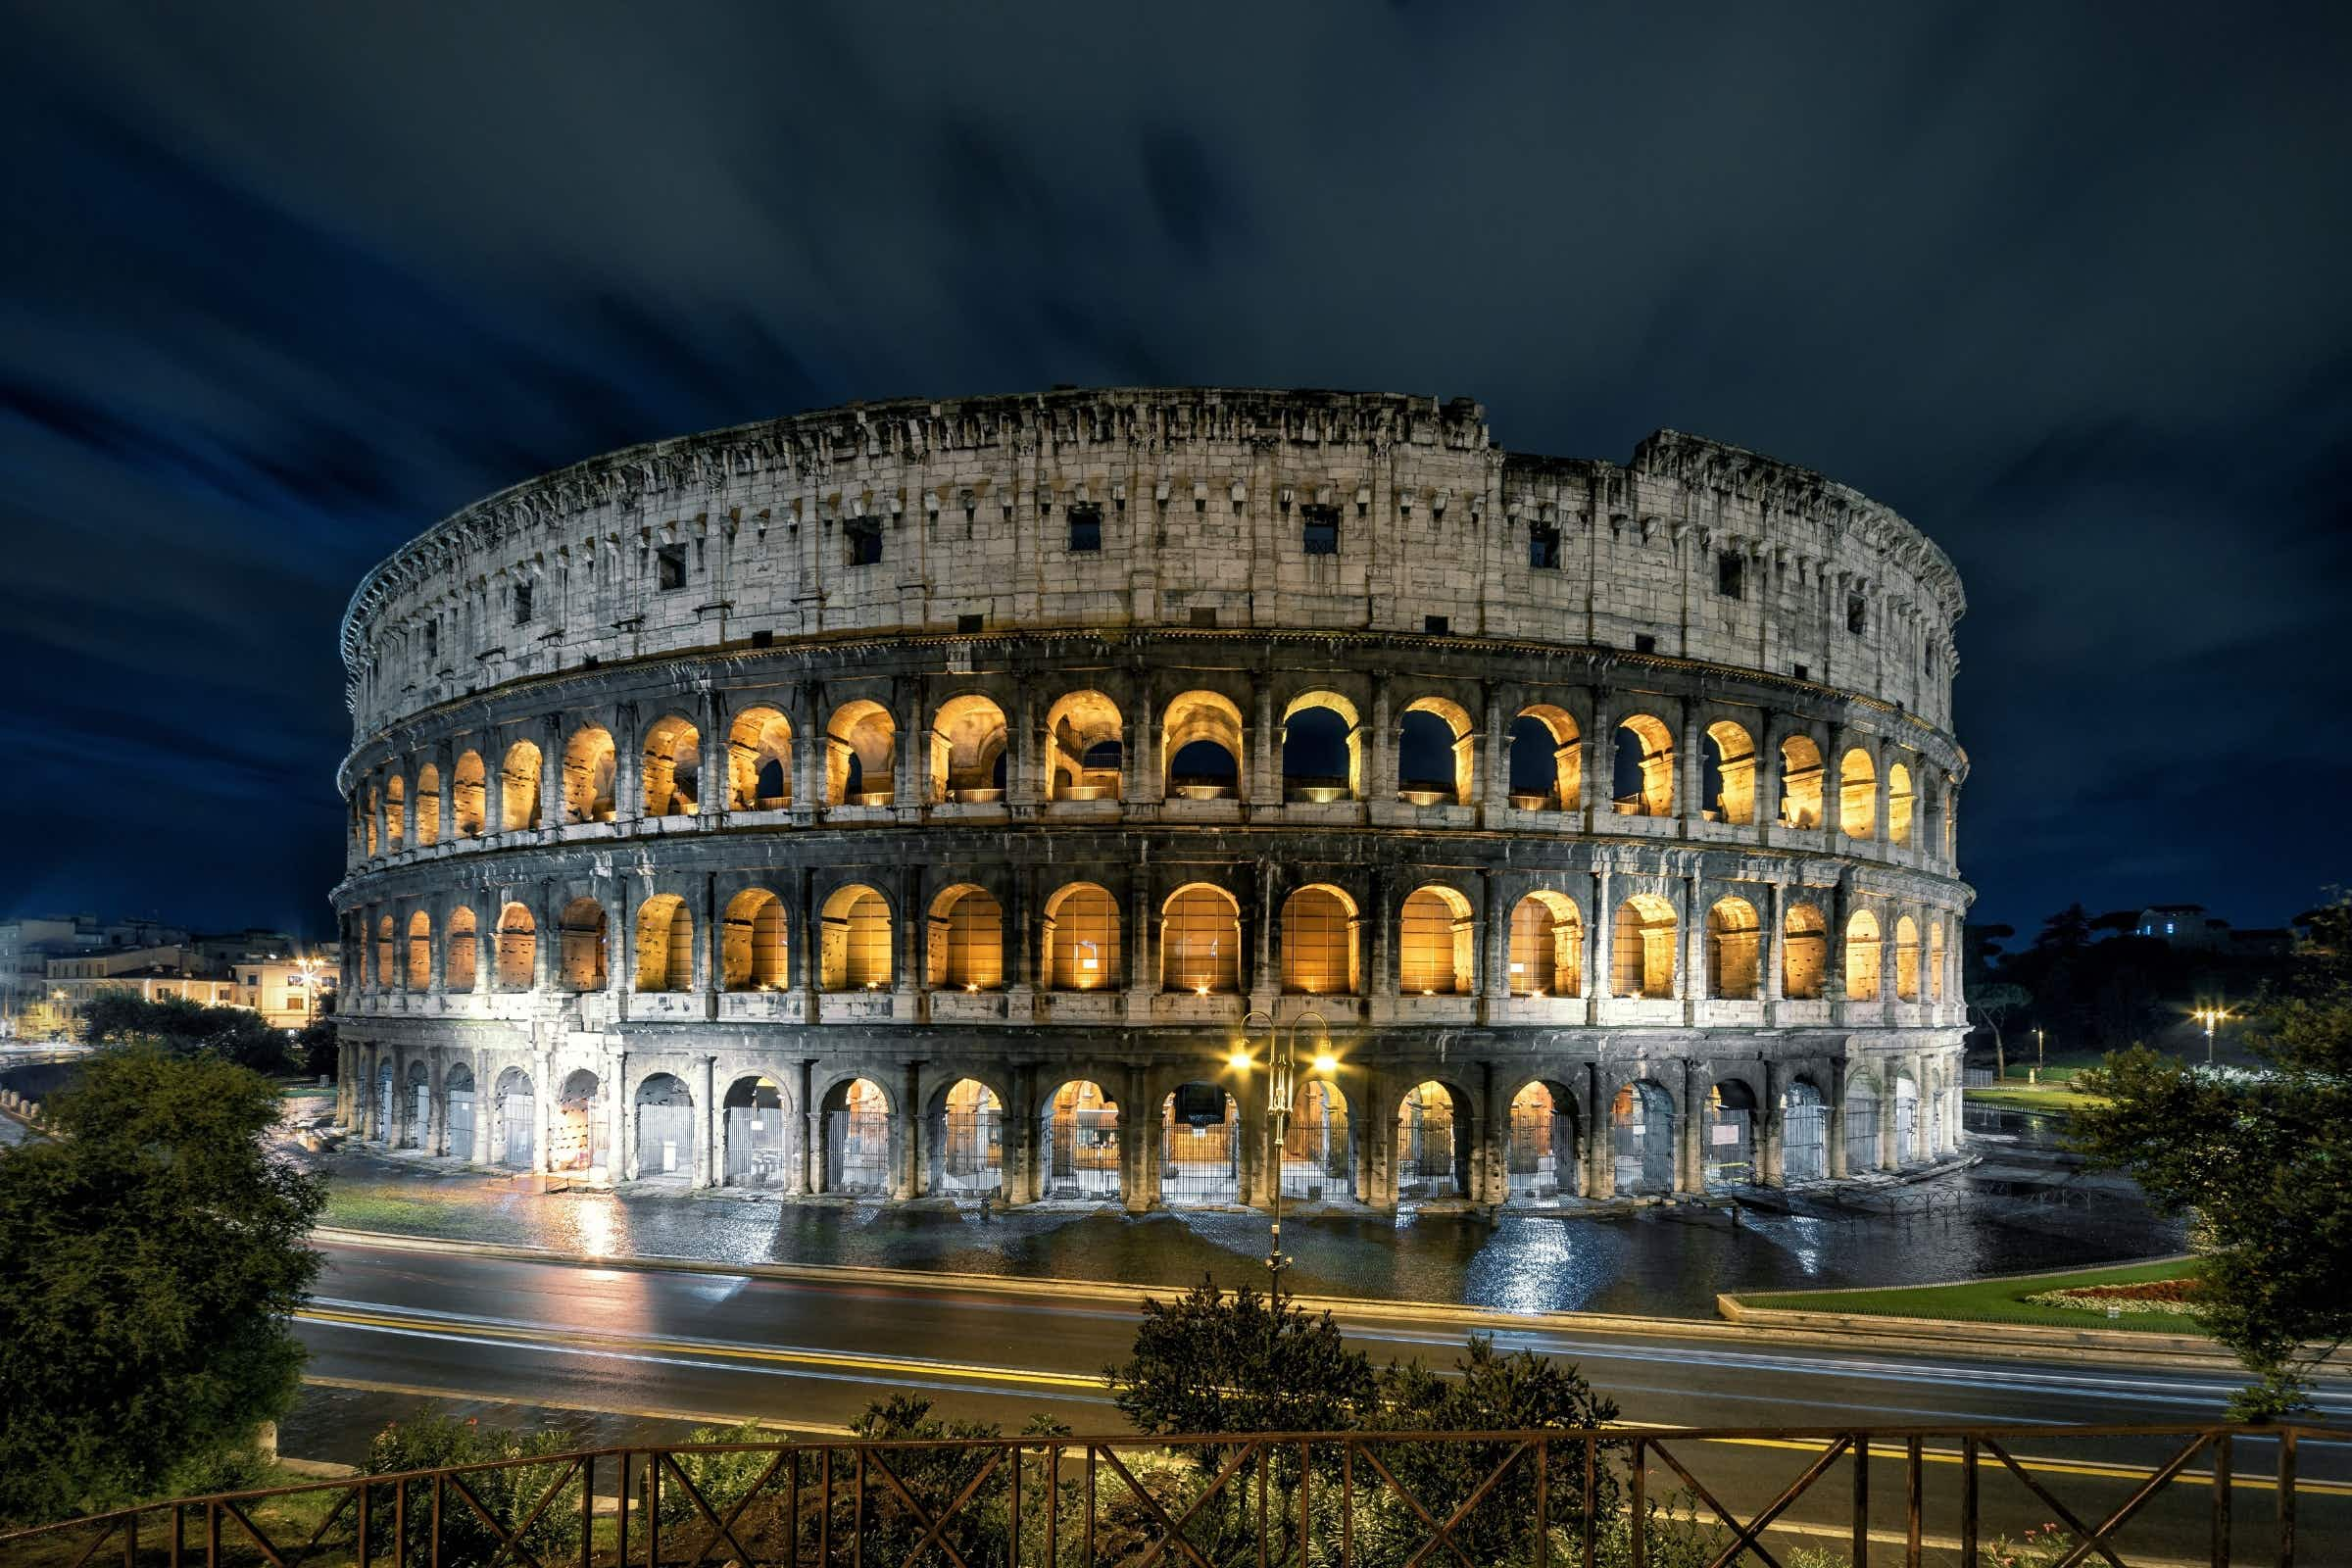 Rome's Colosseum recreates opening games with virtual reality